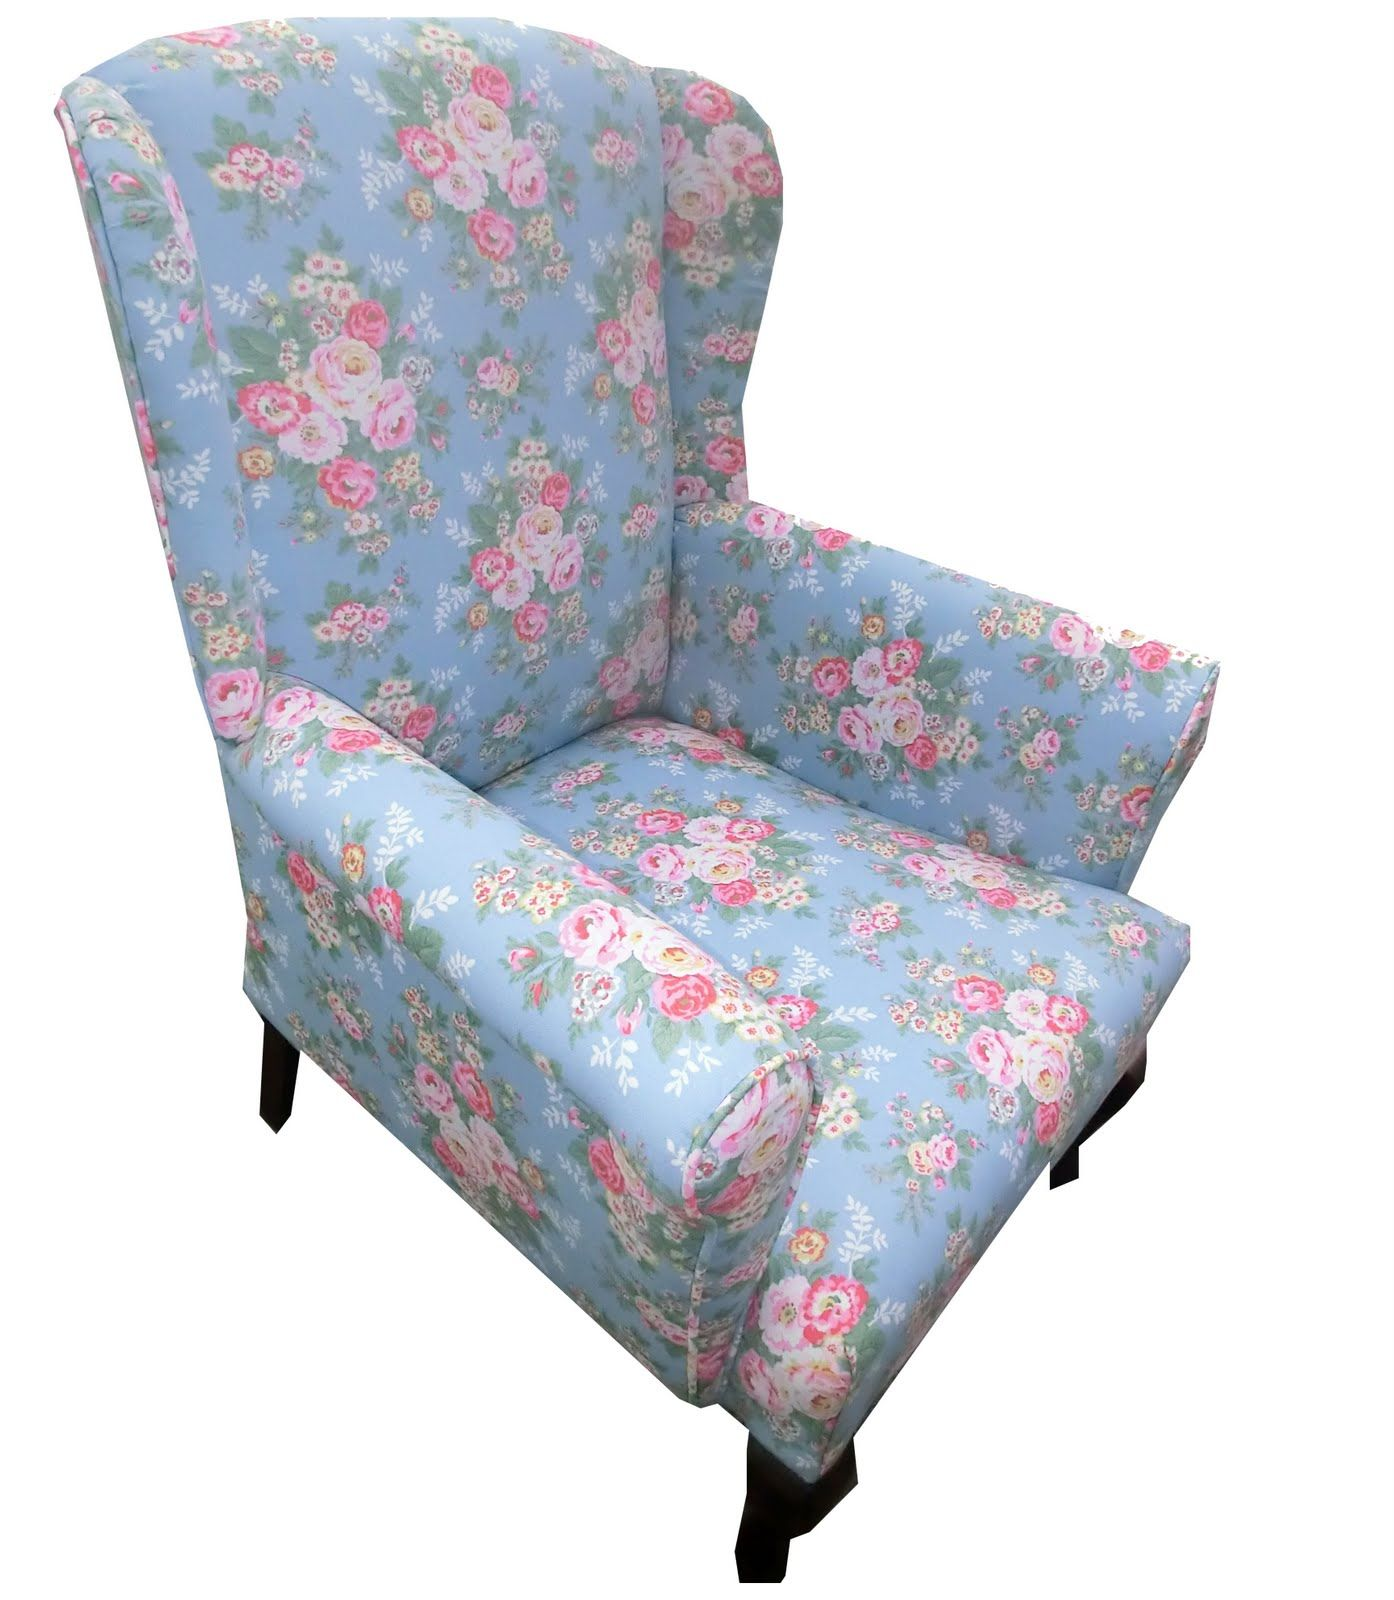 Vintage And Antique Chair Styles   Vintage Lane, Dungarvan, Co. Waterford: Antique Queen Anne Style chair ...